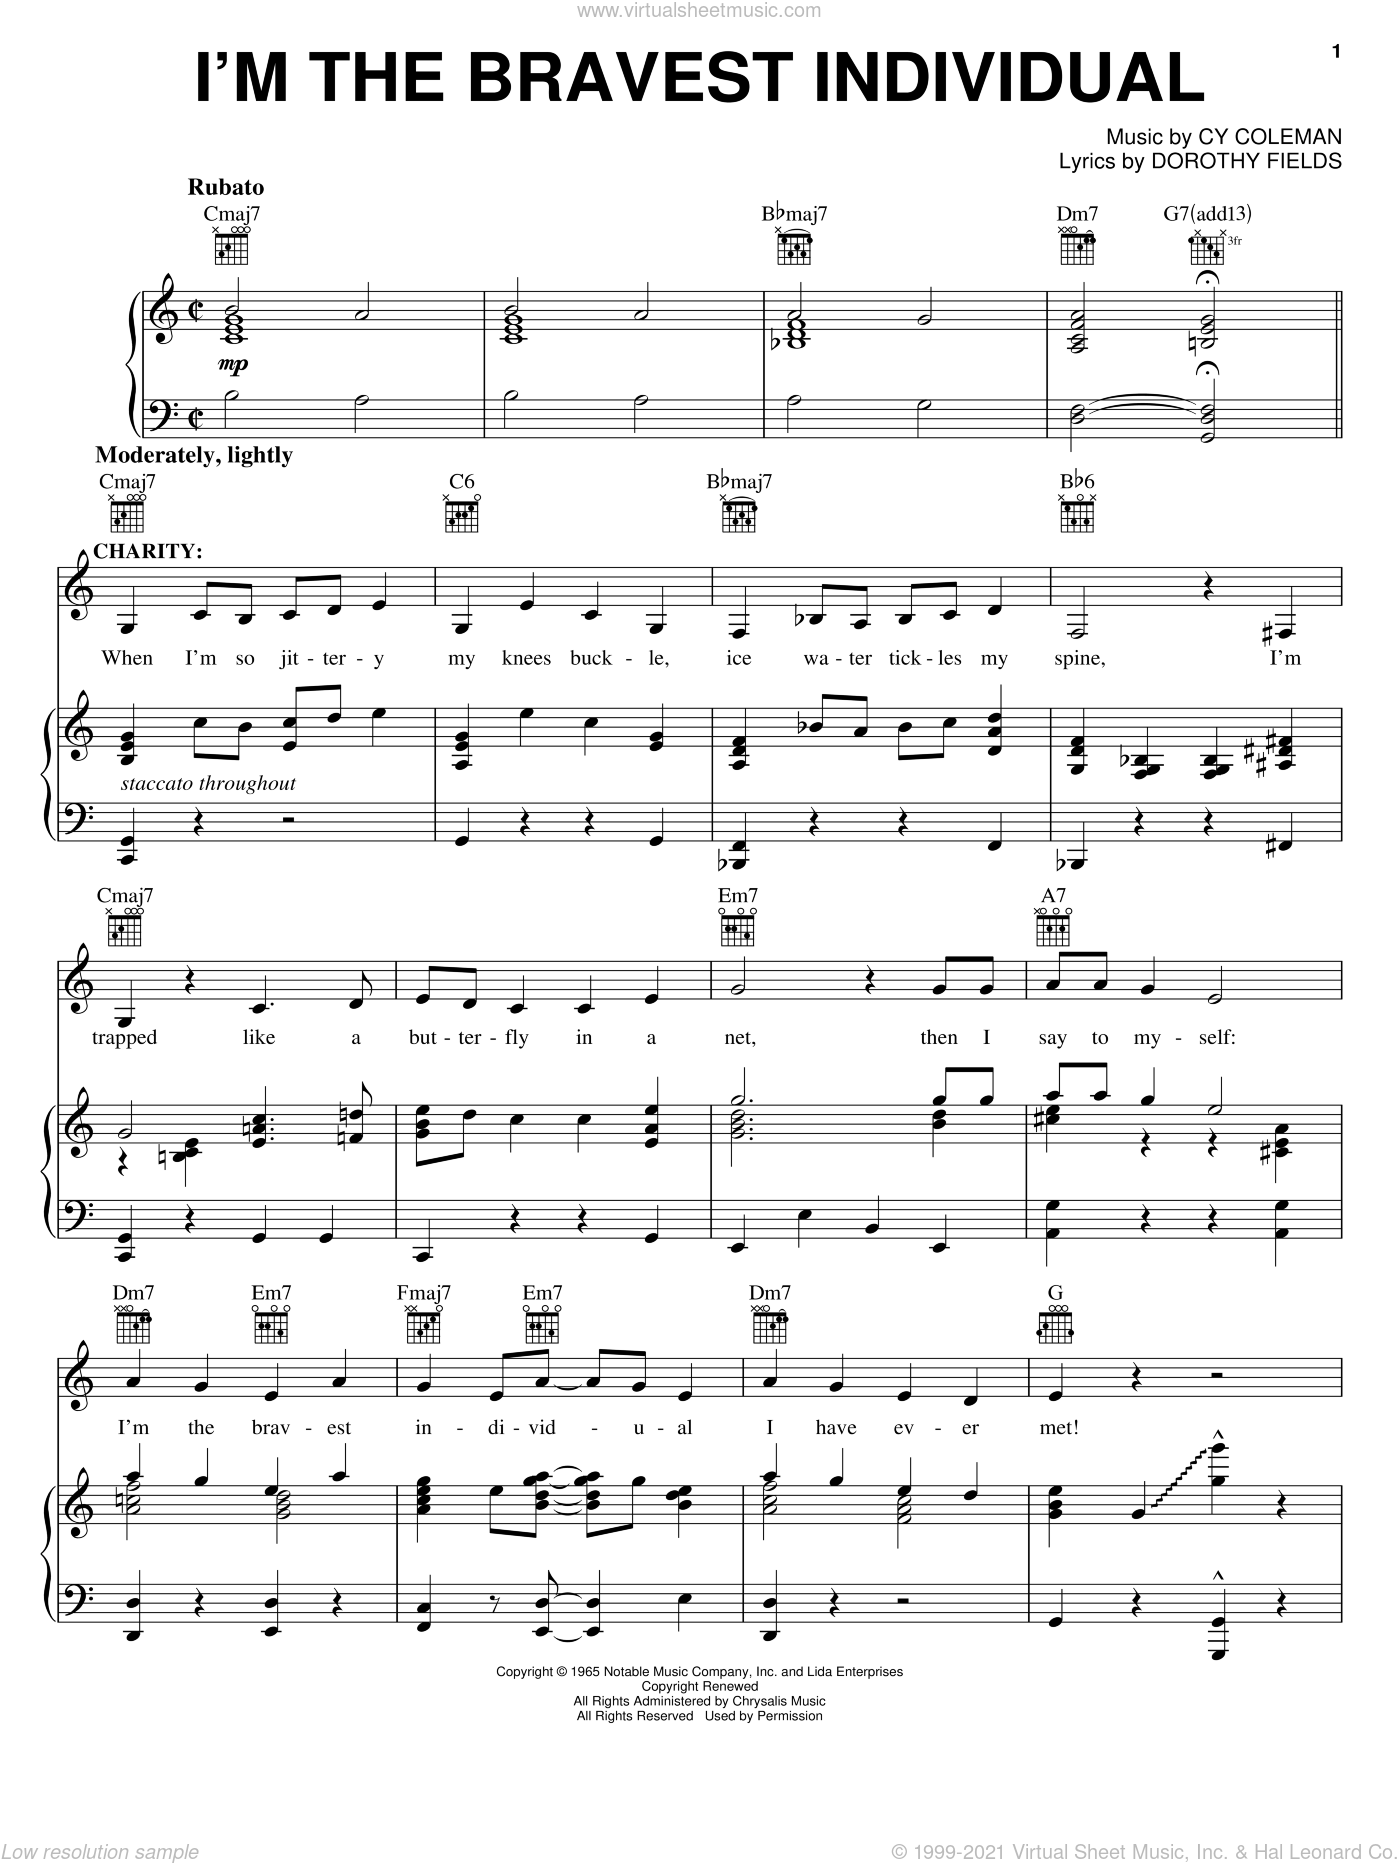 I'm The Bravest Individual sheet music for voice, piano or guitar by Cy Coleman and Dorothy Fields. Score Image Preview.